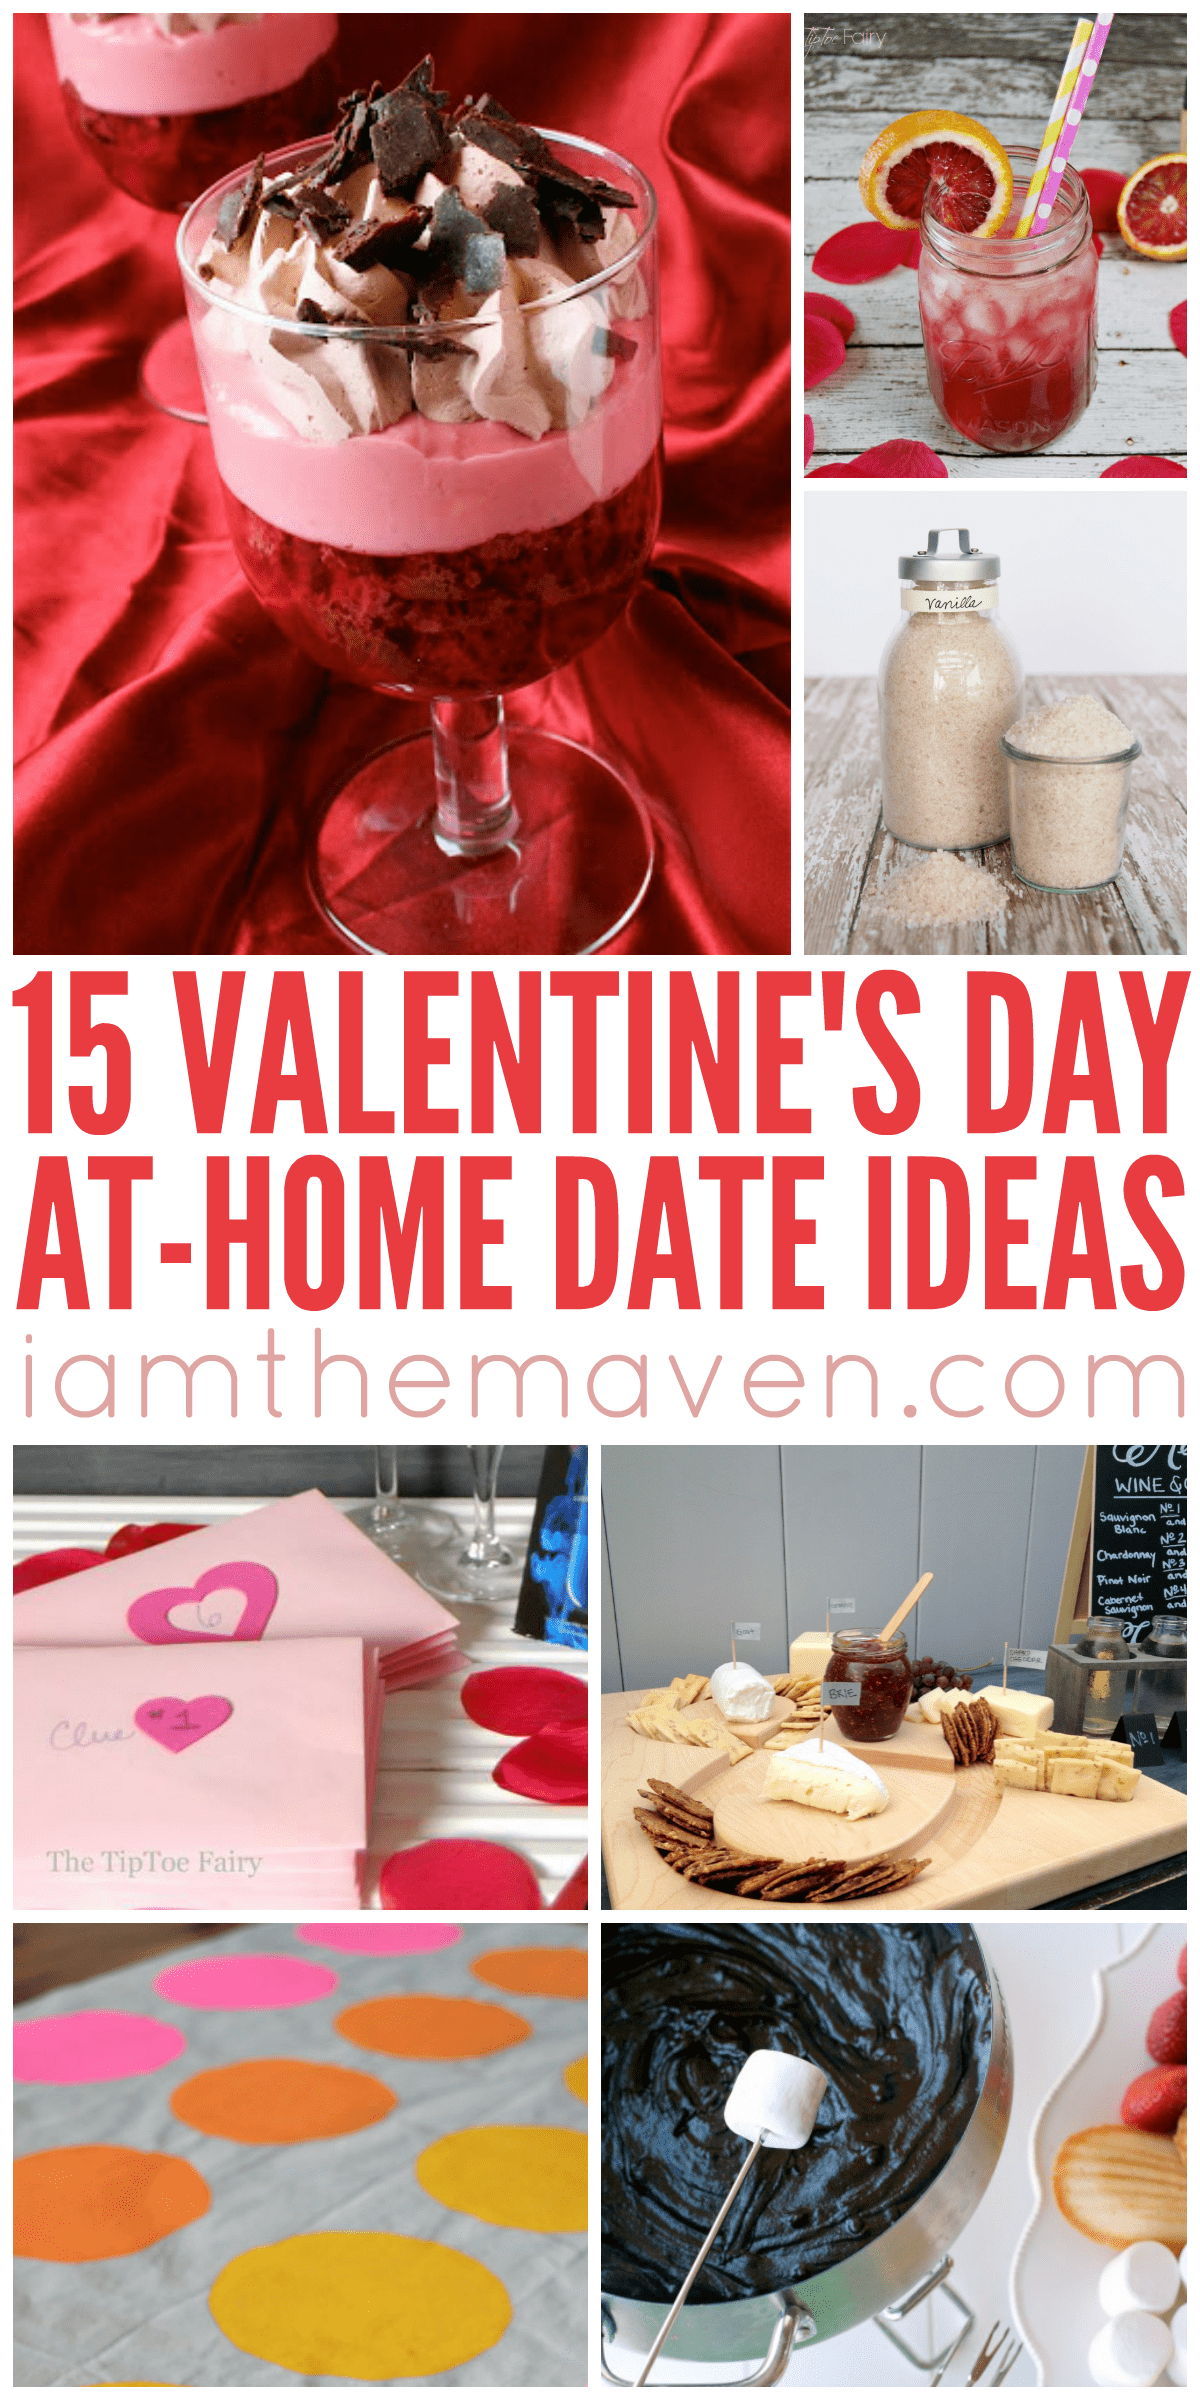 No need to spend a ton of money going out for the weekend. Here are 15 easy Valentine Date Ideas for couples.